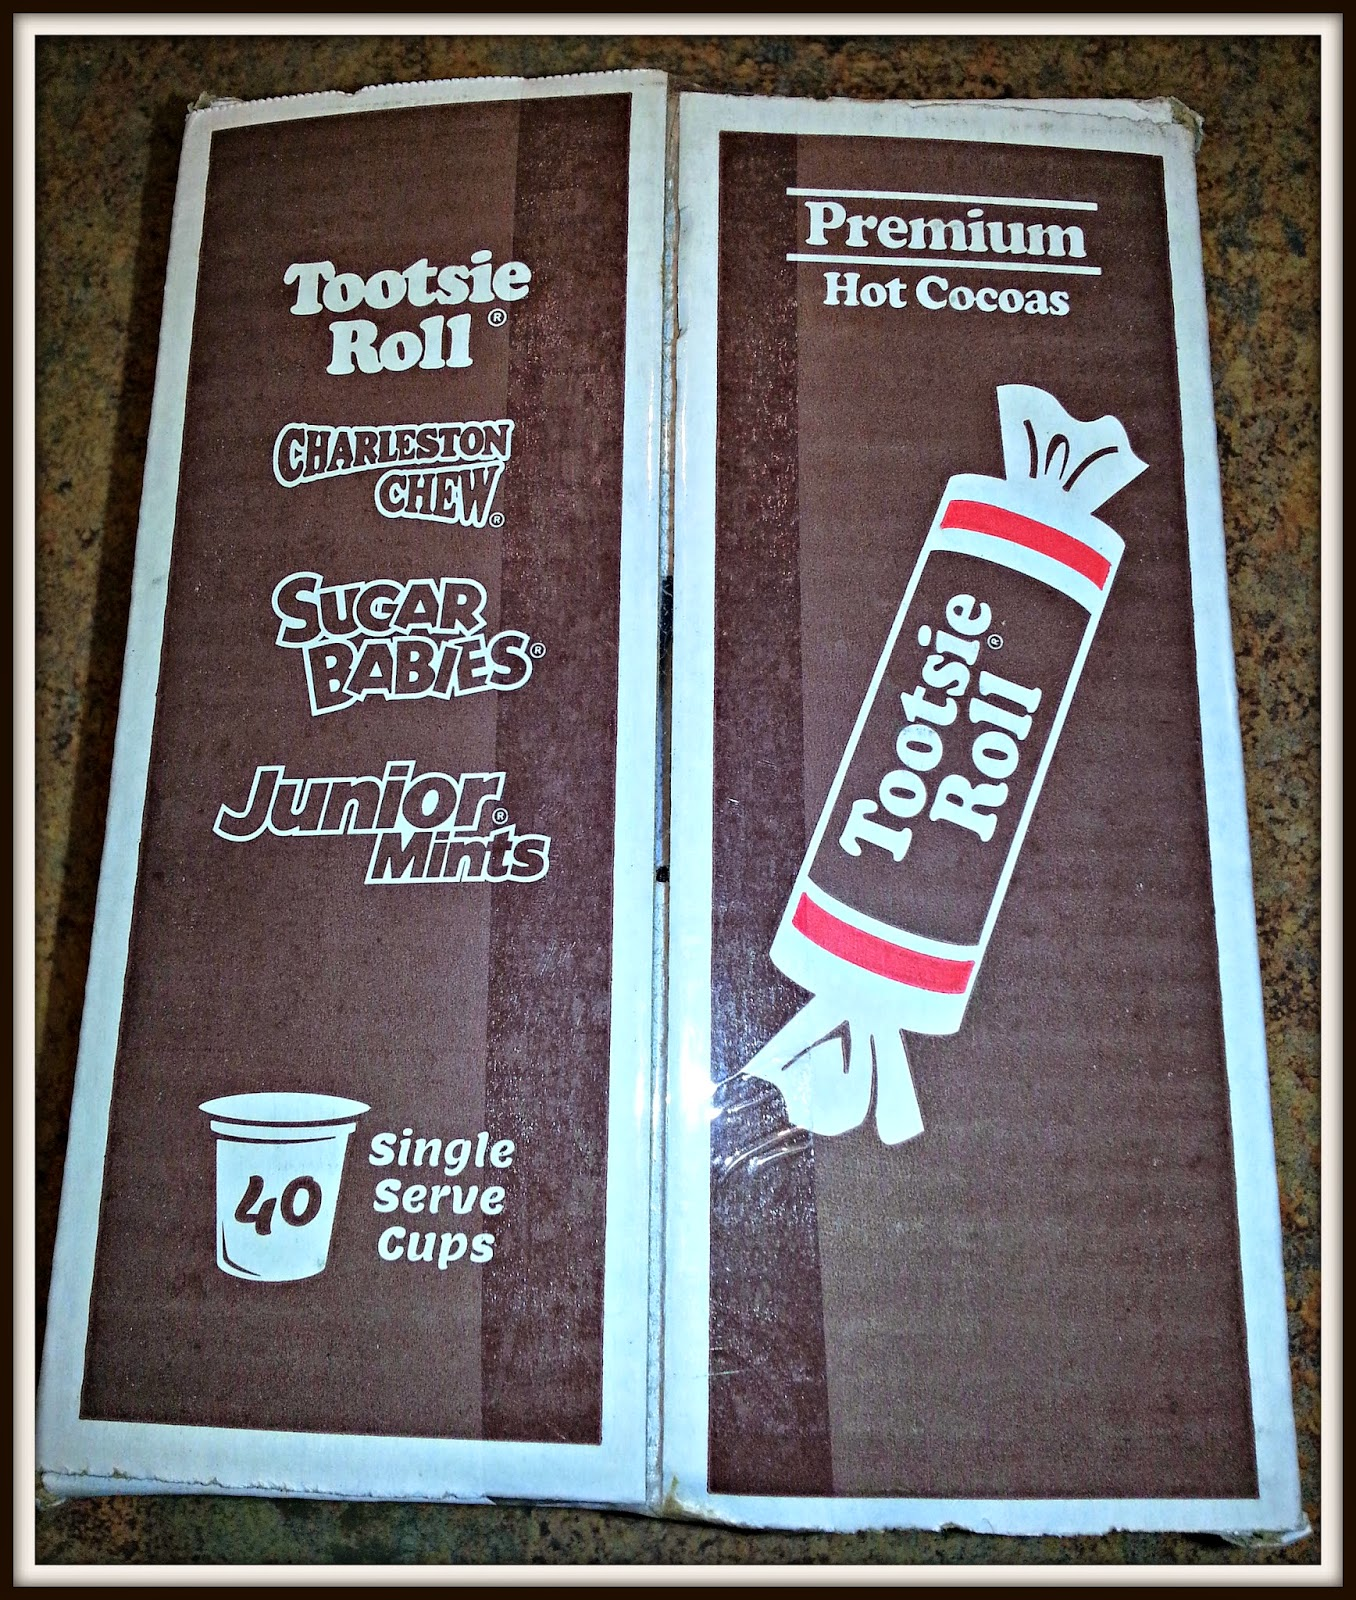 Thrifty and Frugal Living: Tootsie Roll Hot Cocoa K-cup